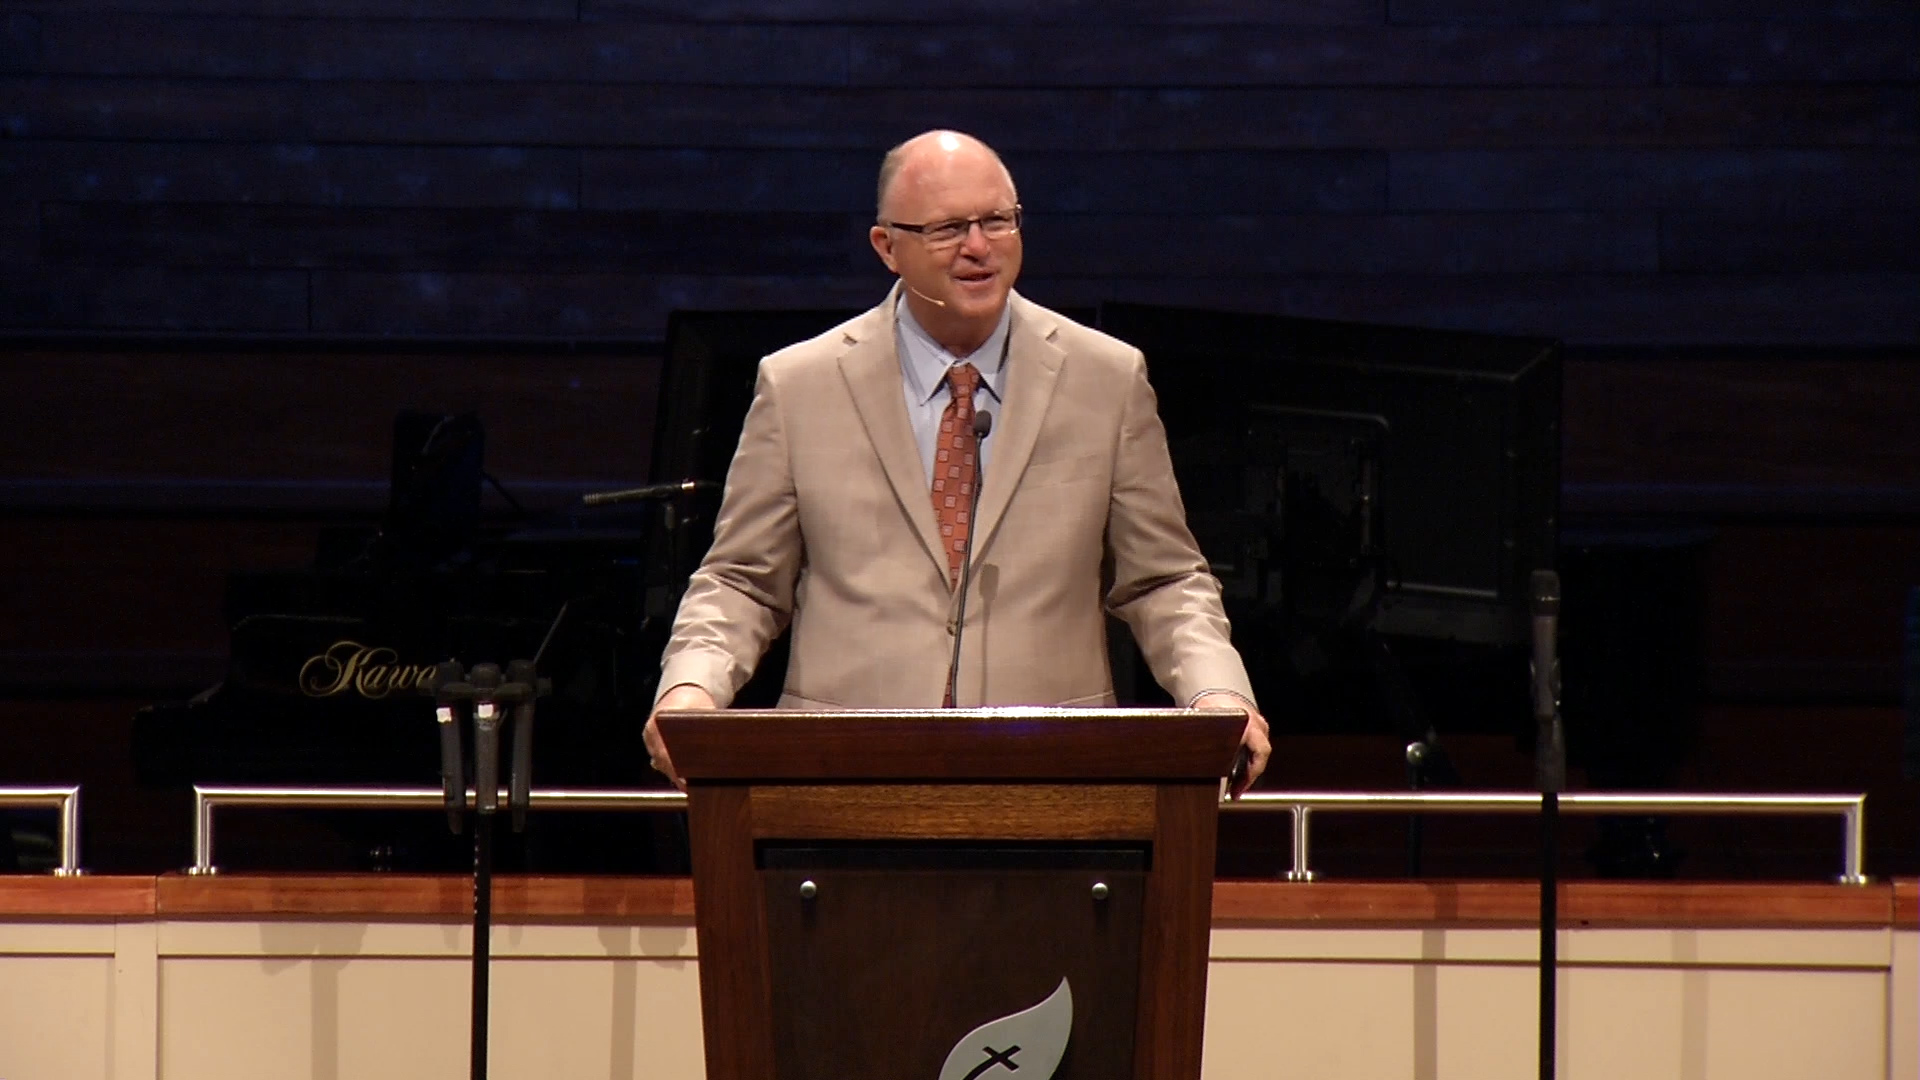 Pastor Paul Chappell: The Provision of Grace